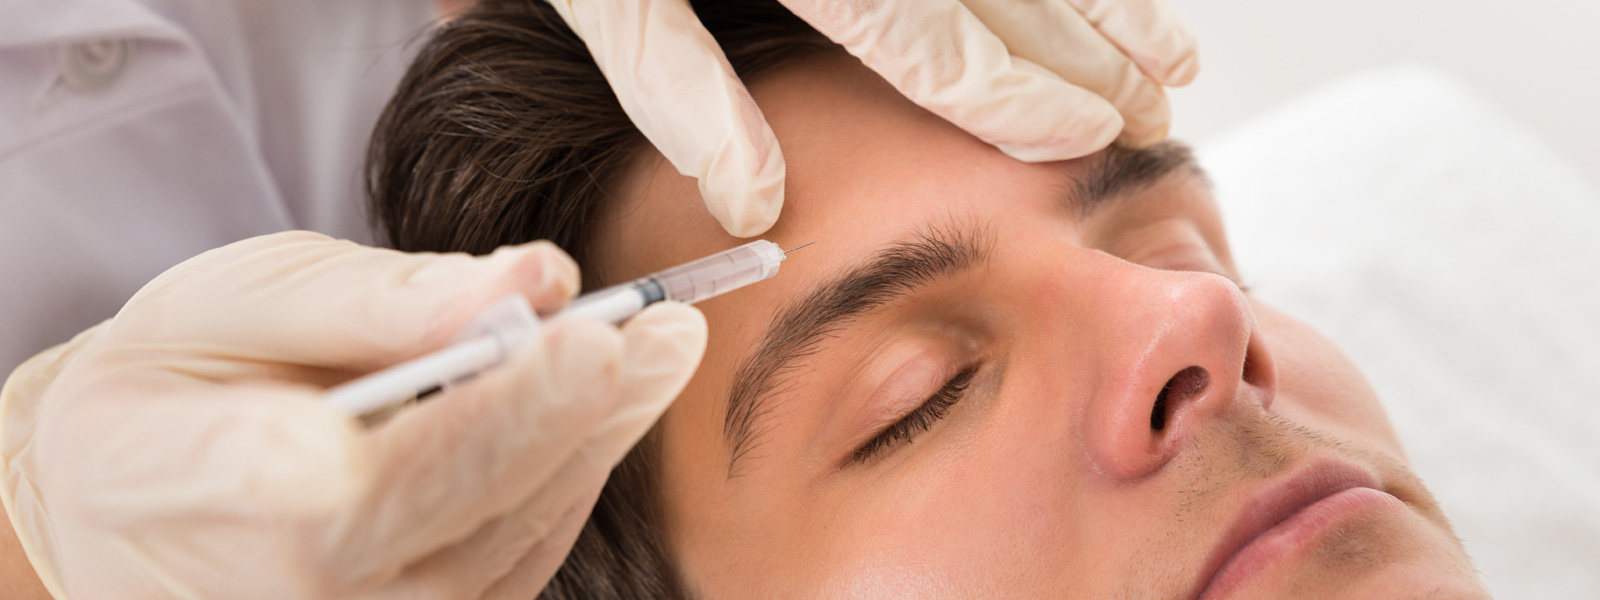 Botox for men: Specialized treatment in Orchard Park, NY